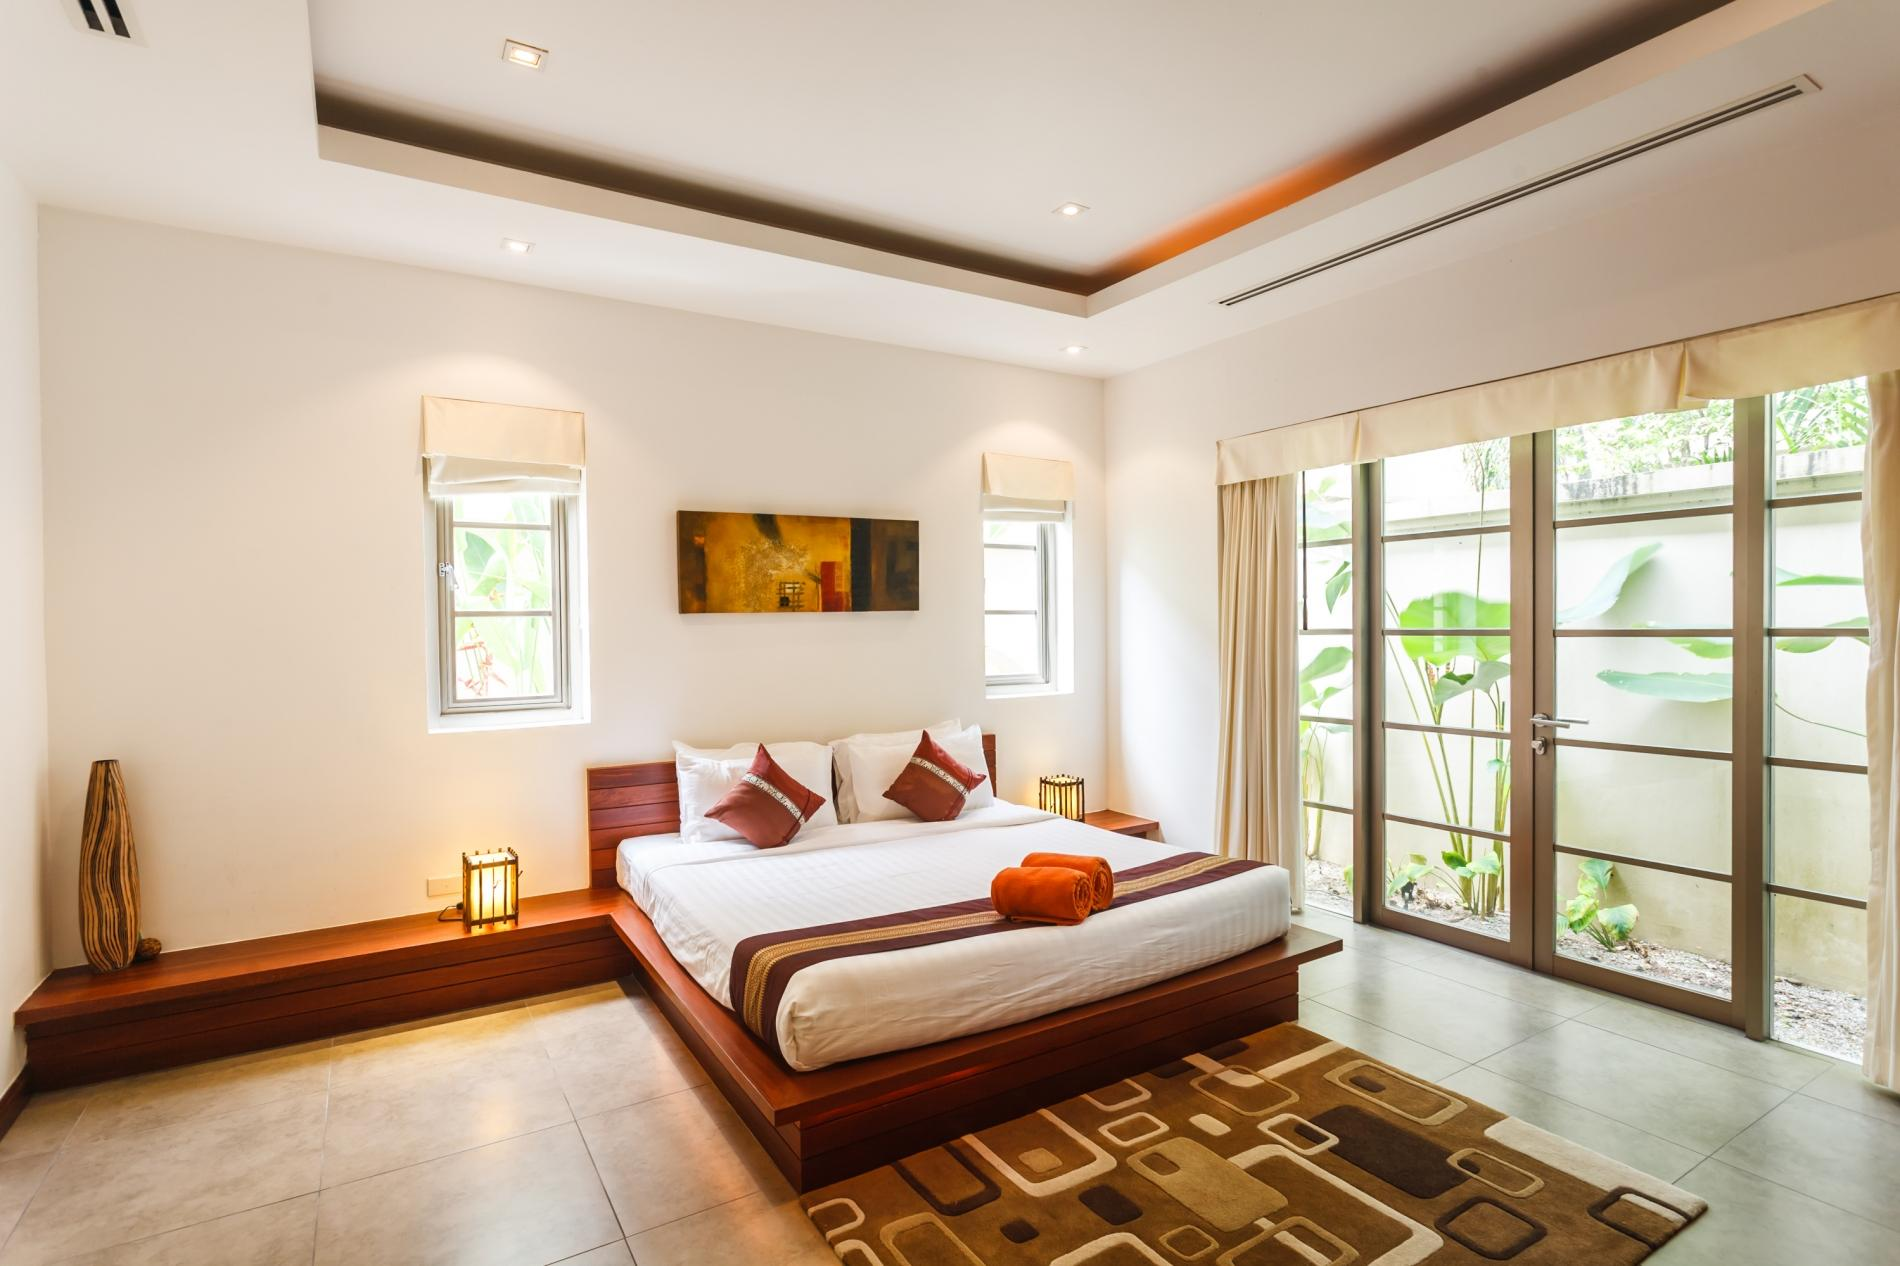 TR111 - Private pool villa in Bang Tao Residence - 3 bedrooms photo 5777155